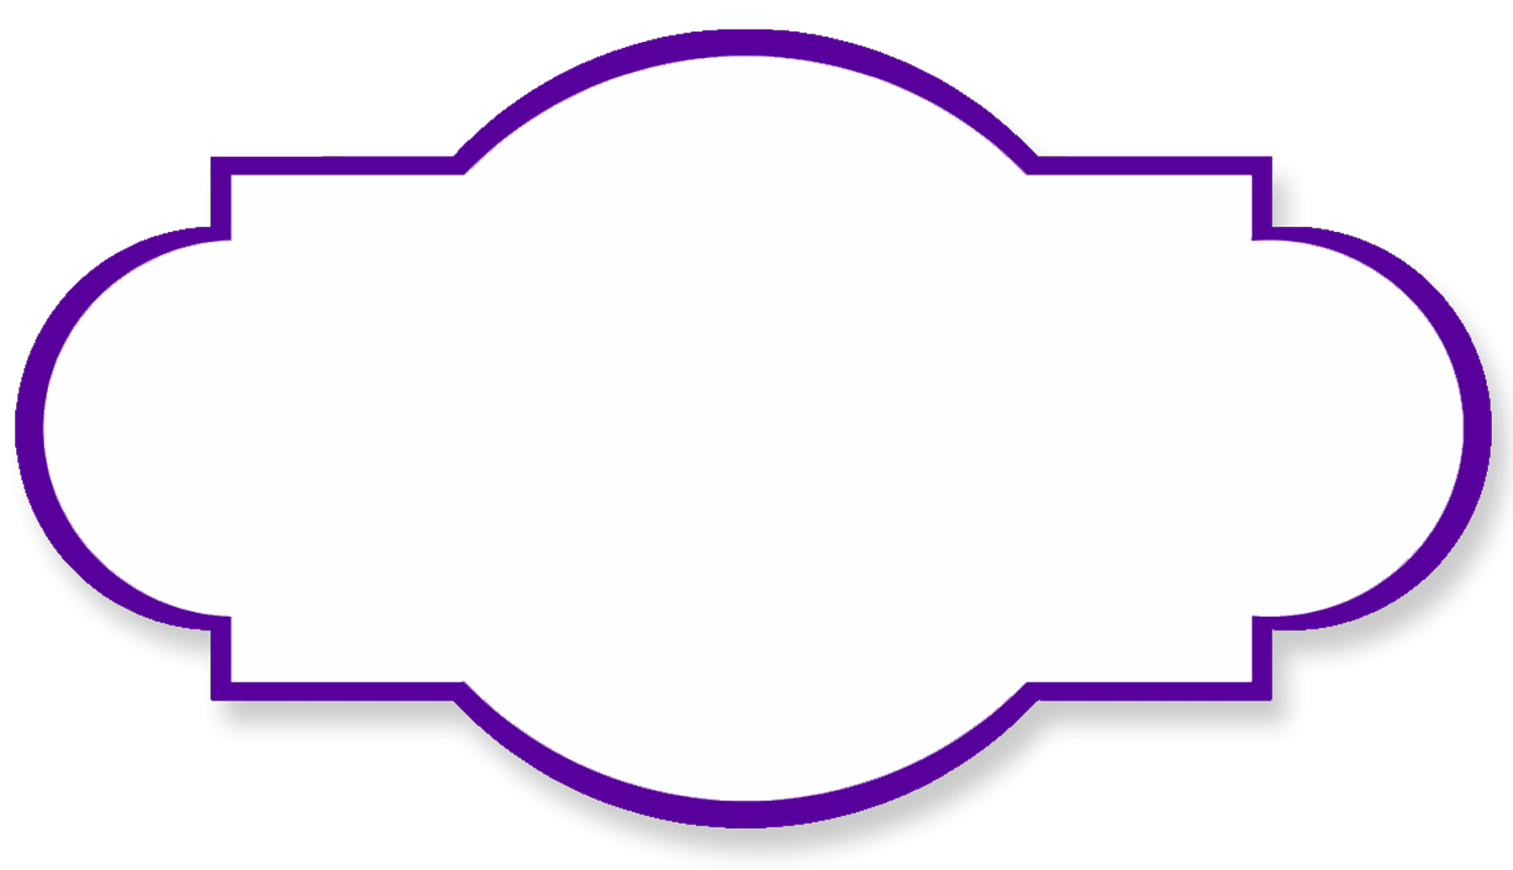 hight resolution of purple butterfly border panda free images purplebutterflyborderclipart scroll clipart swirly